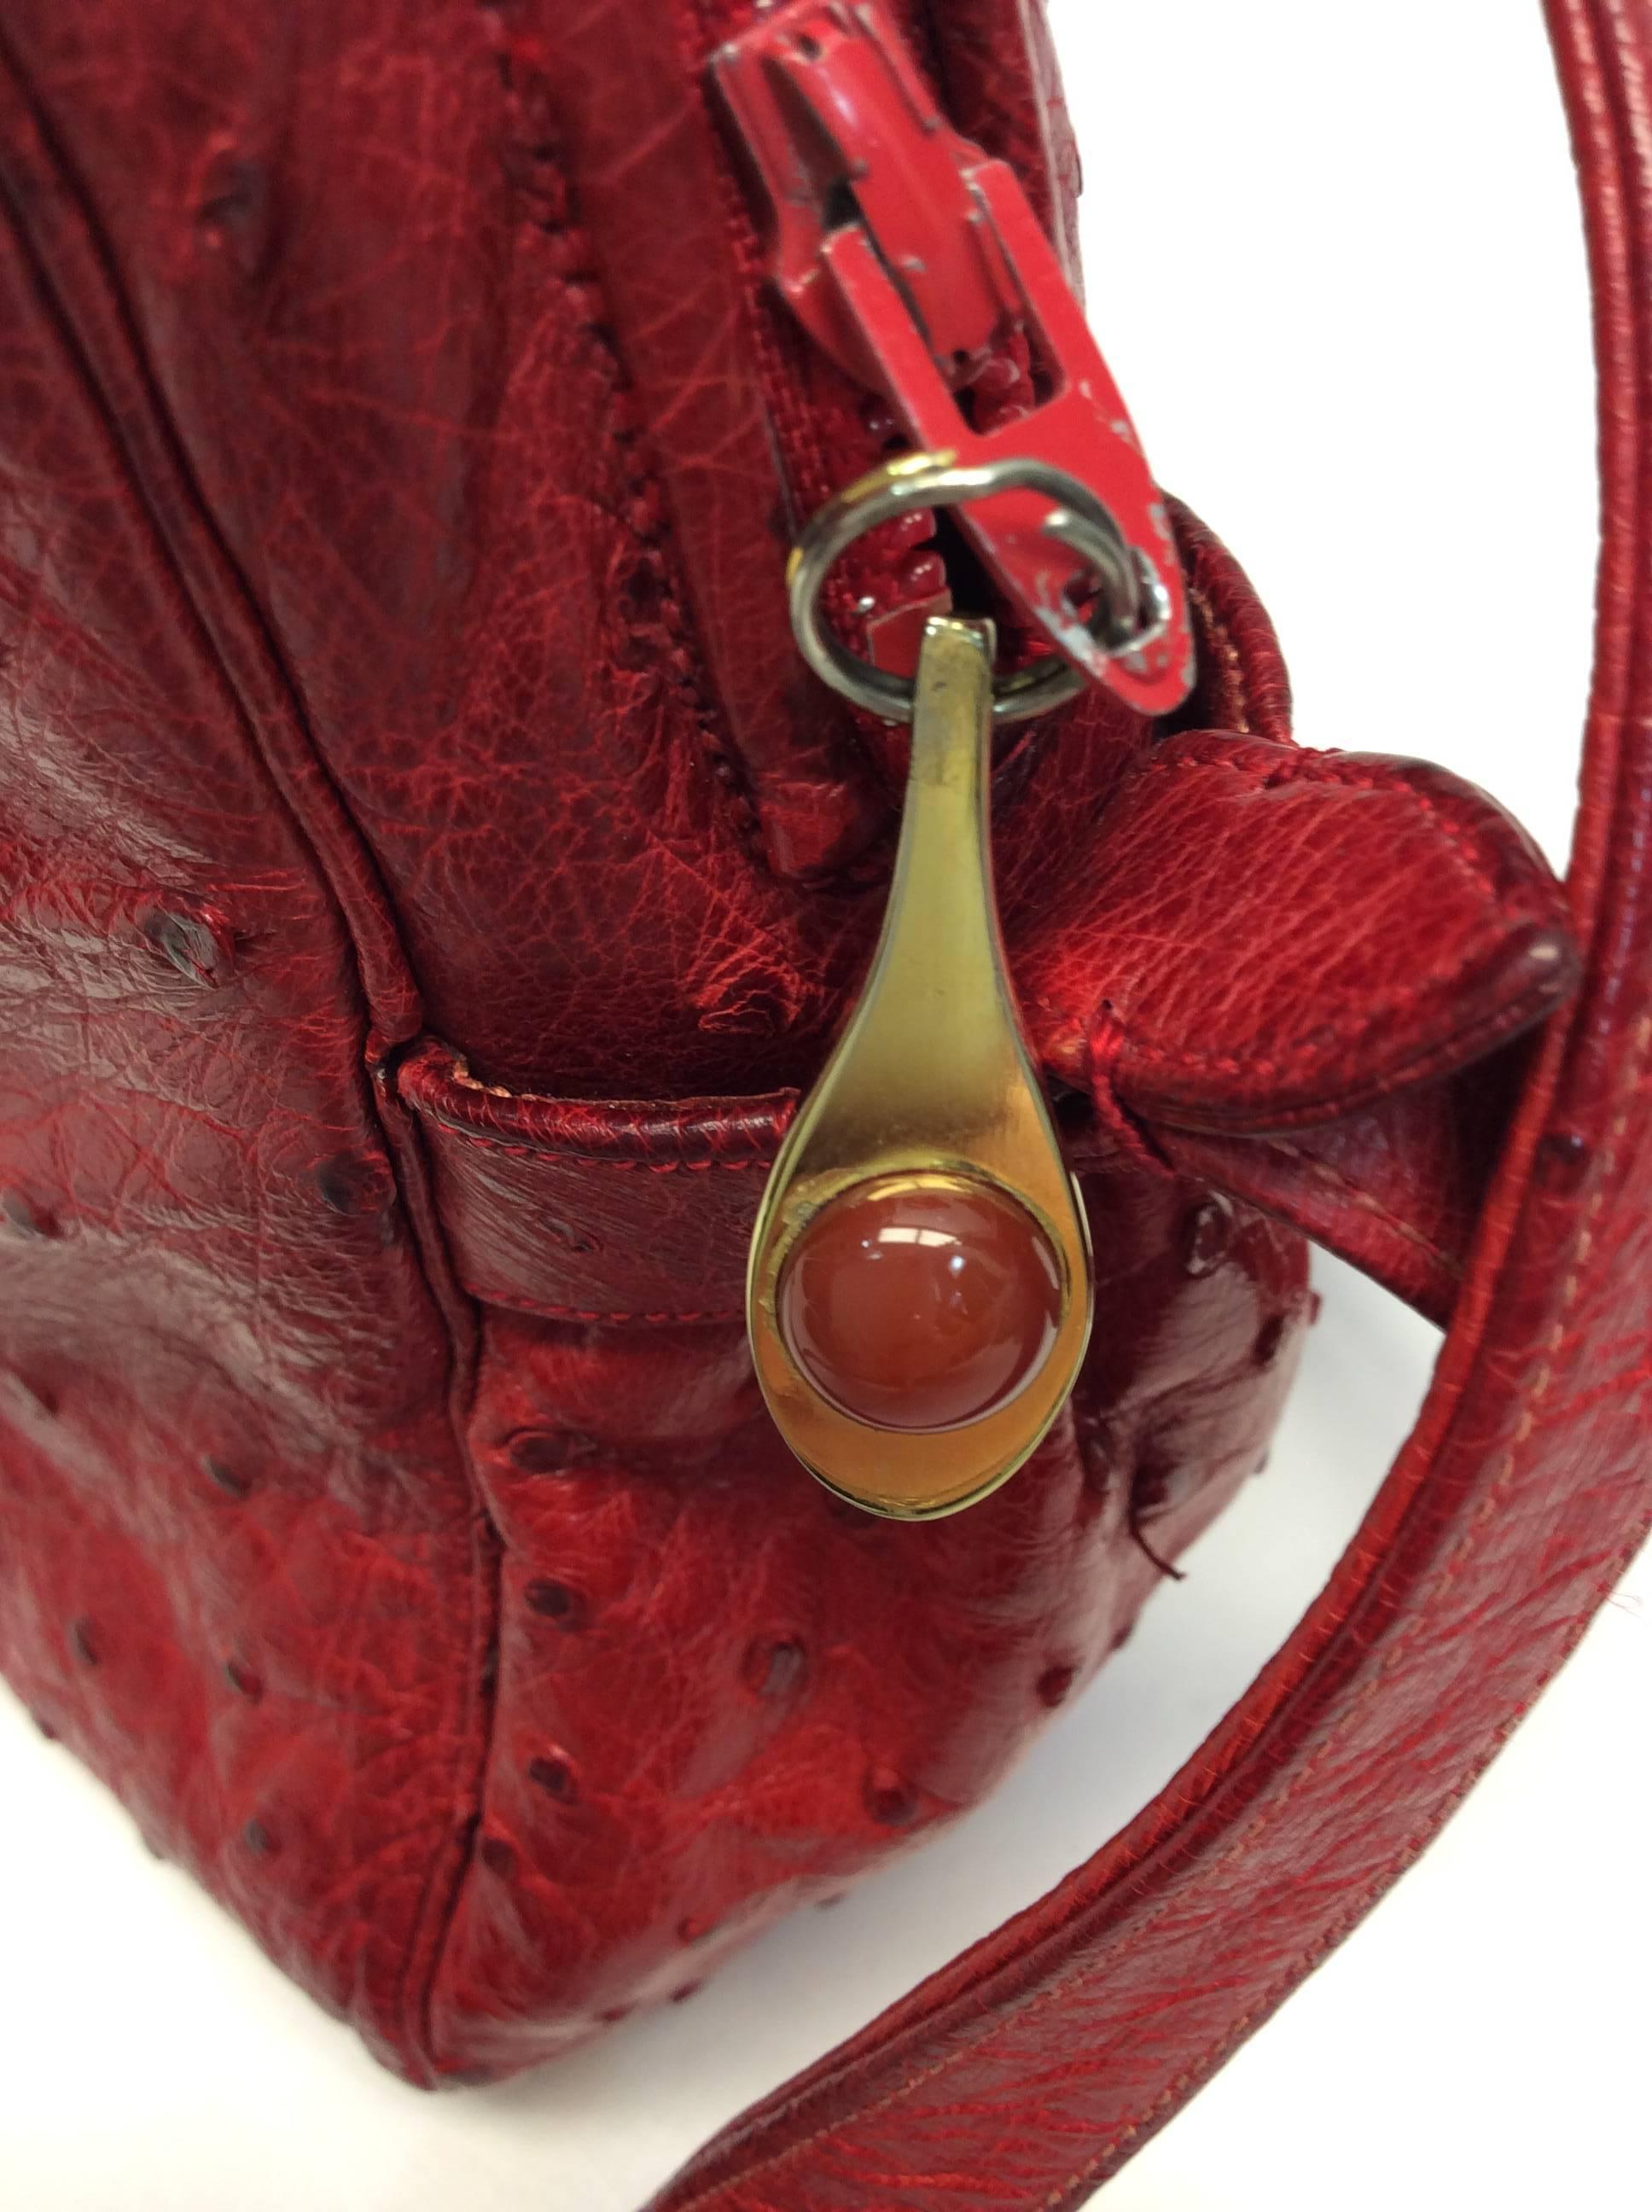 b5ea4589e6 Judith Leiber Red Ostrich Leather Vintage Crossbody For Sale at 1stdibs